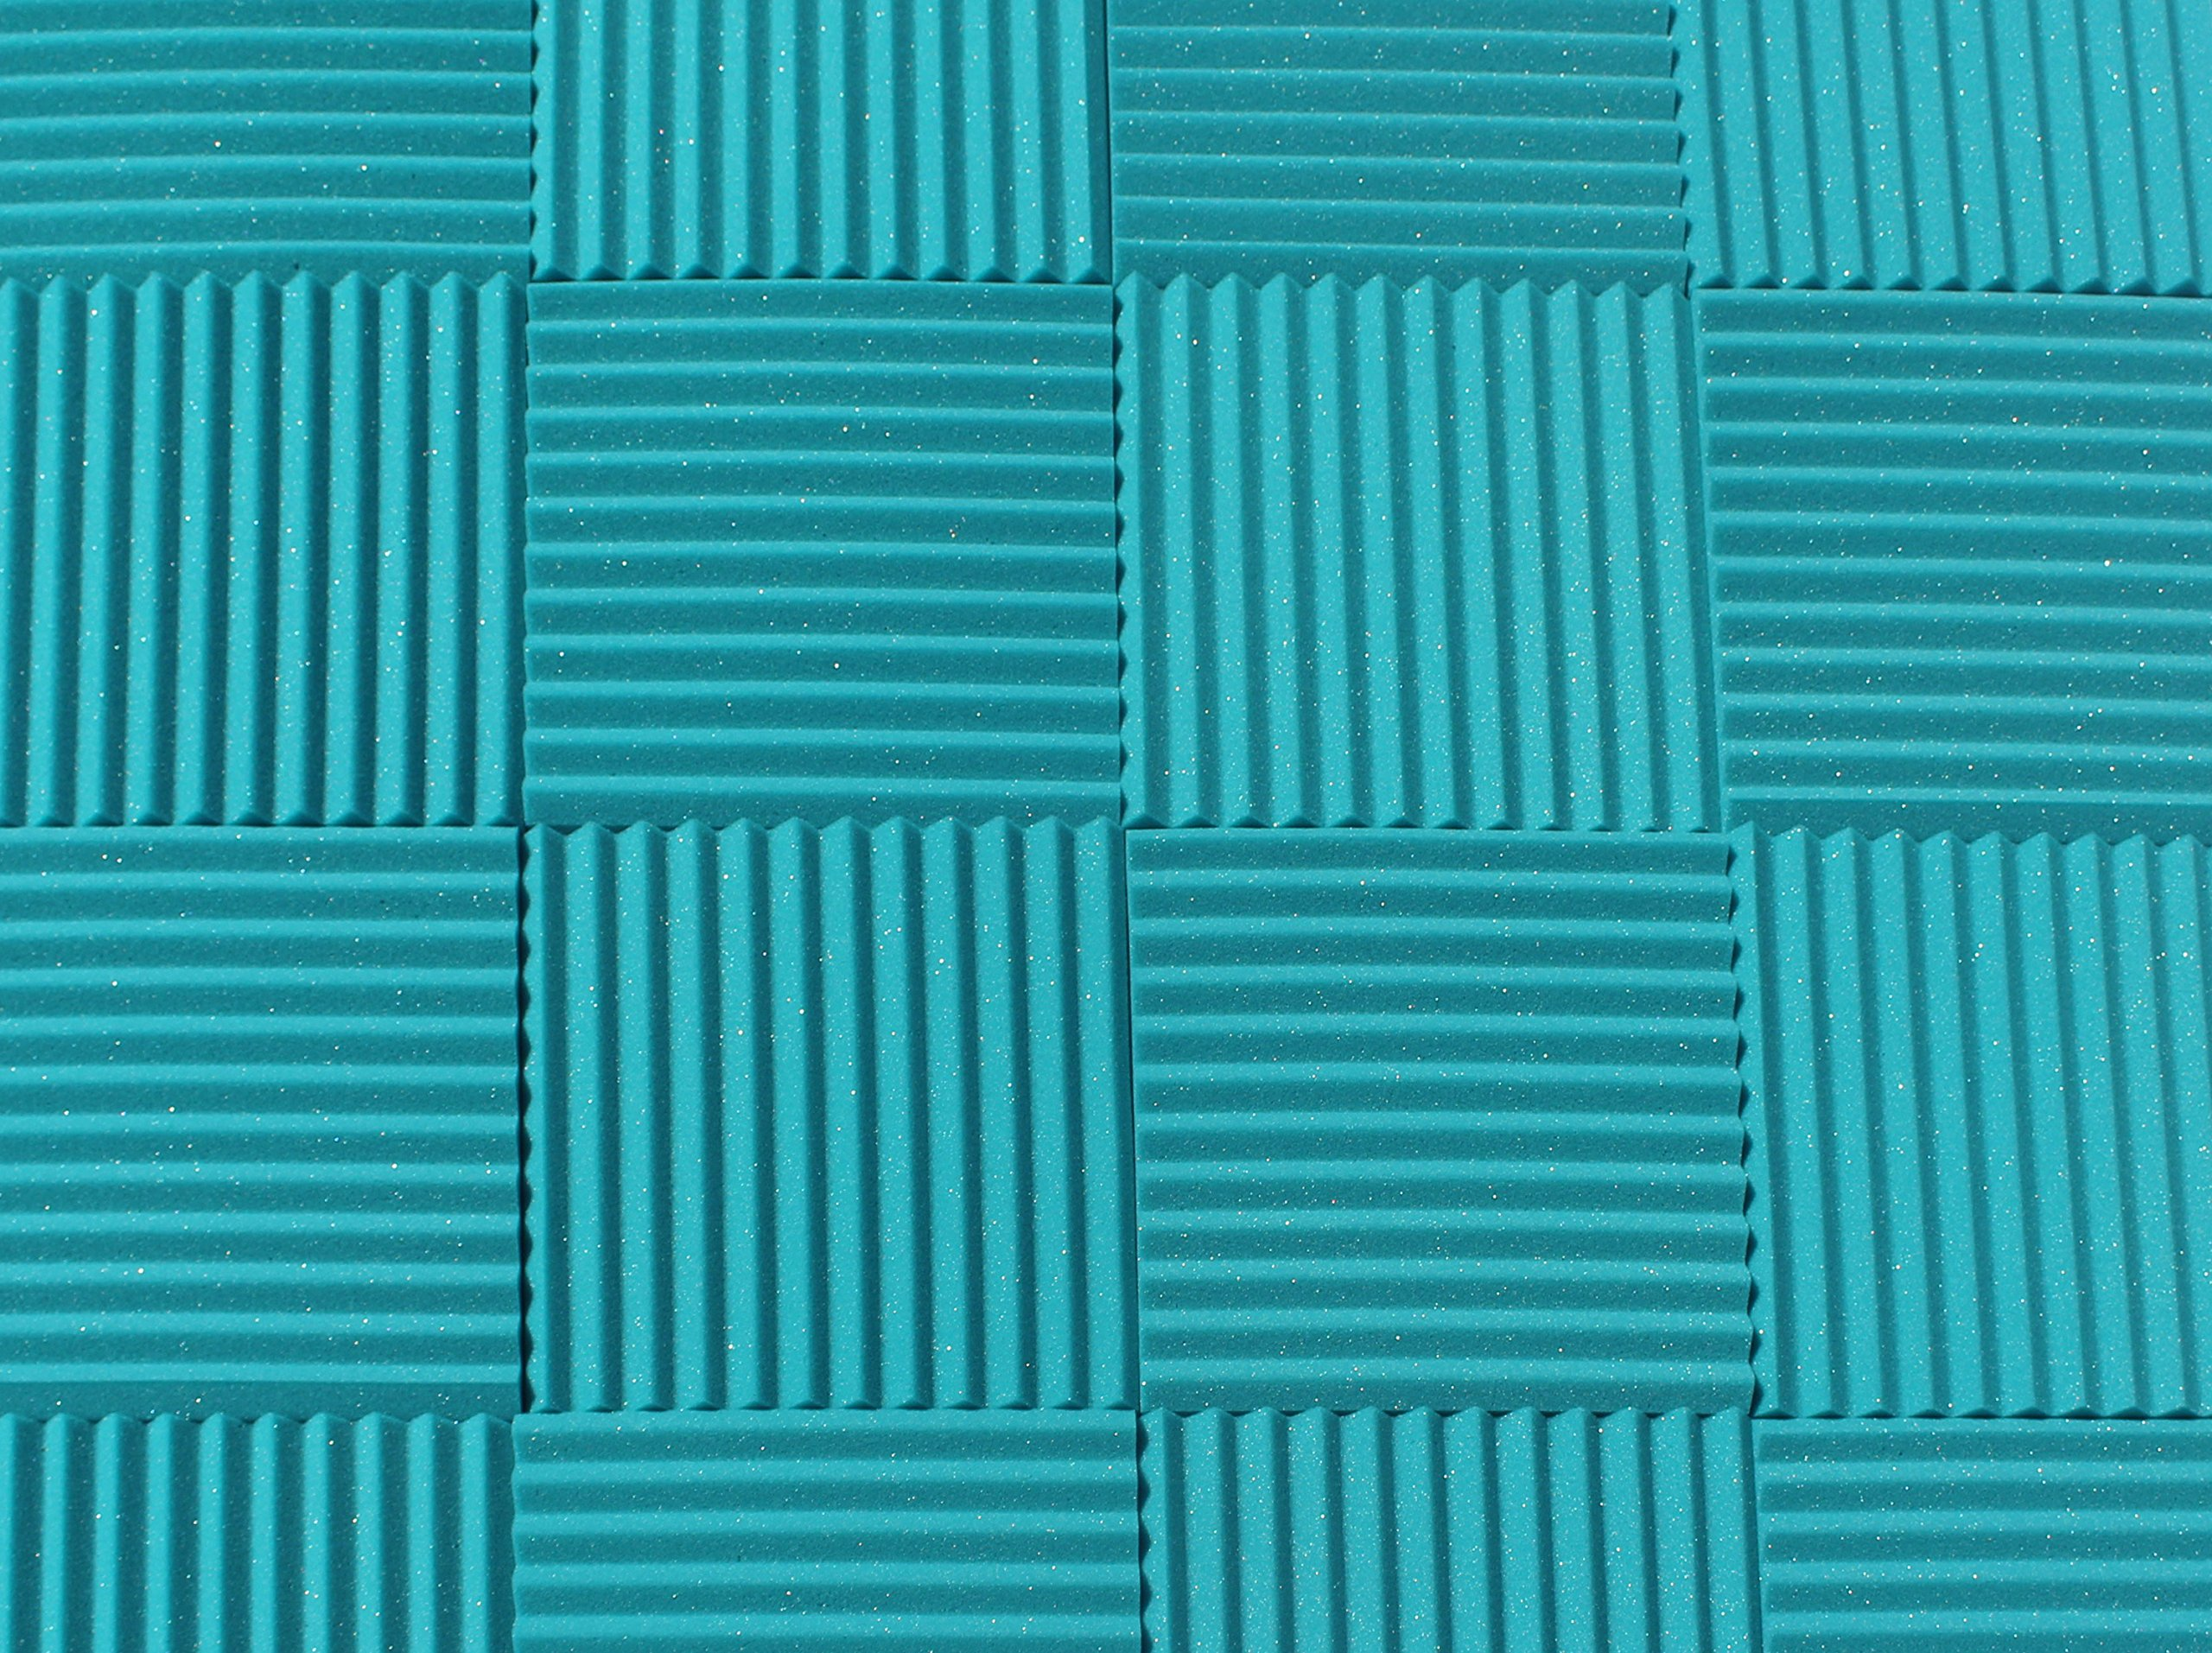 "Soundproofing Acoustic Studio Foam - Teal Color - Wedge Style Panels 12""x12""x1"" Tiles - 6 Pack"